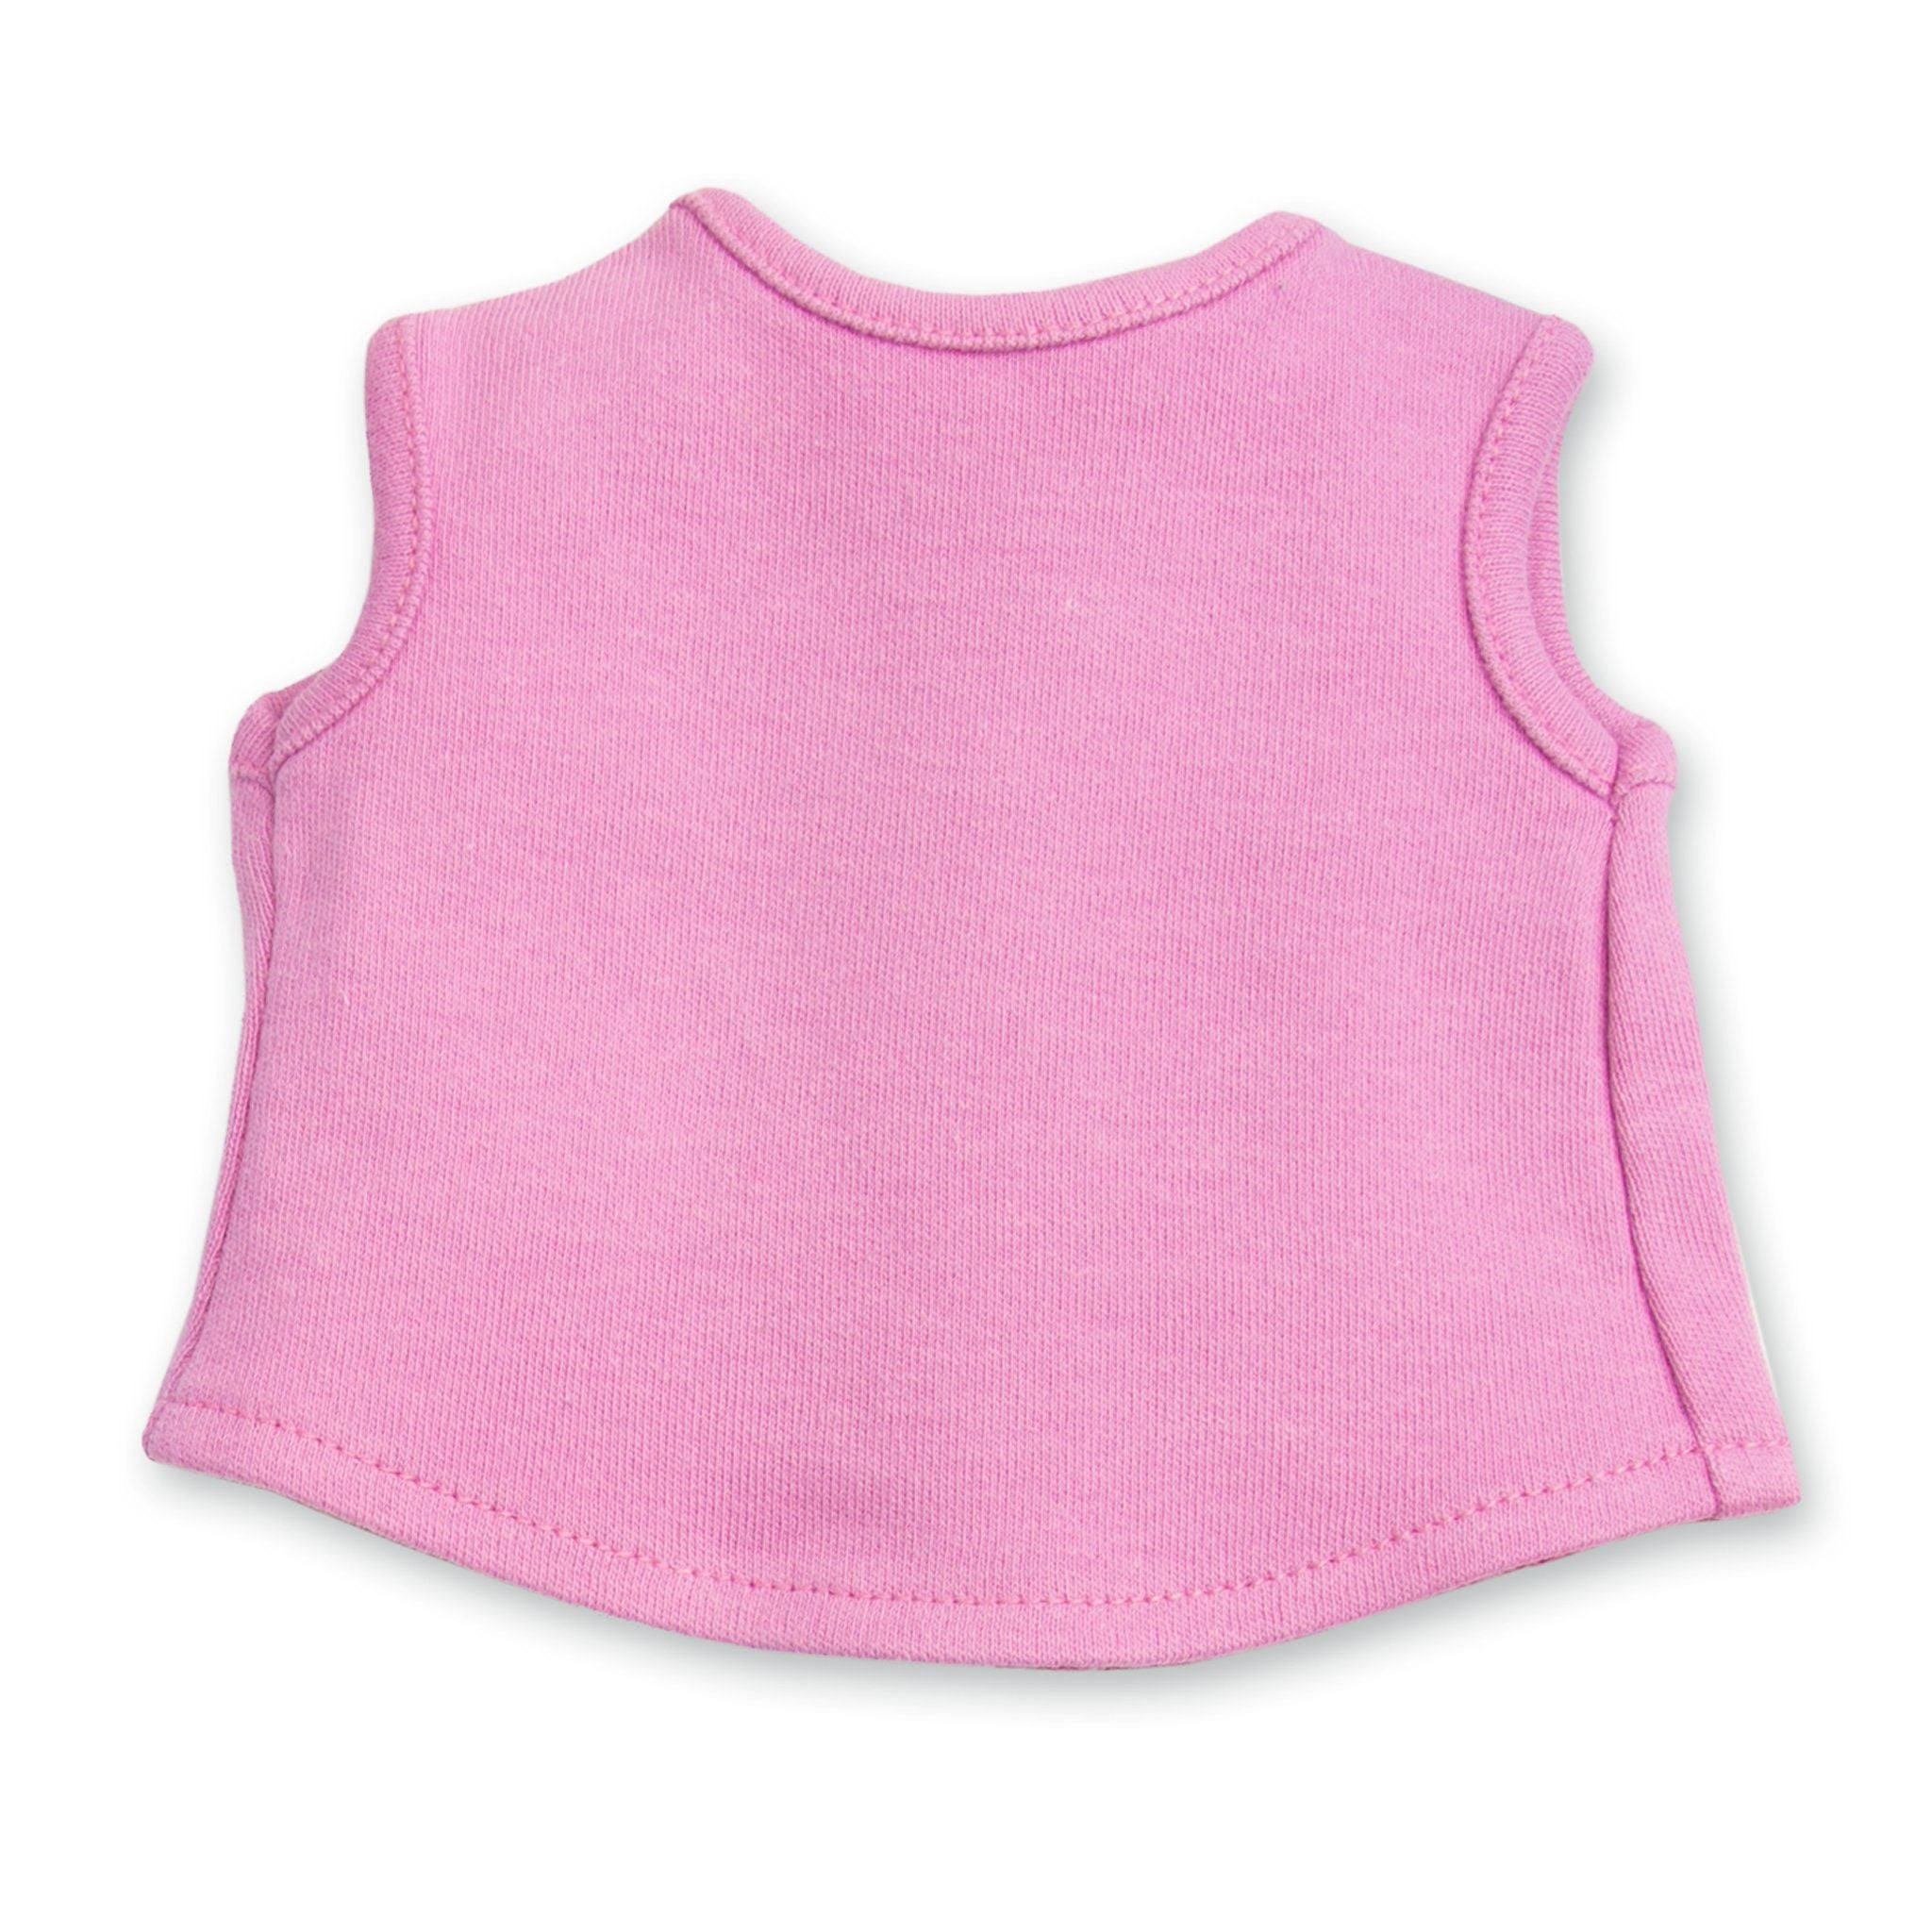 Awesome Blossom 4 piece outfit pink sleeveless shirt fits all 18 inch dolls.